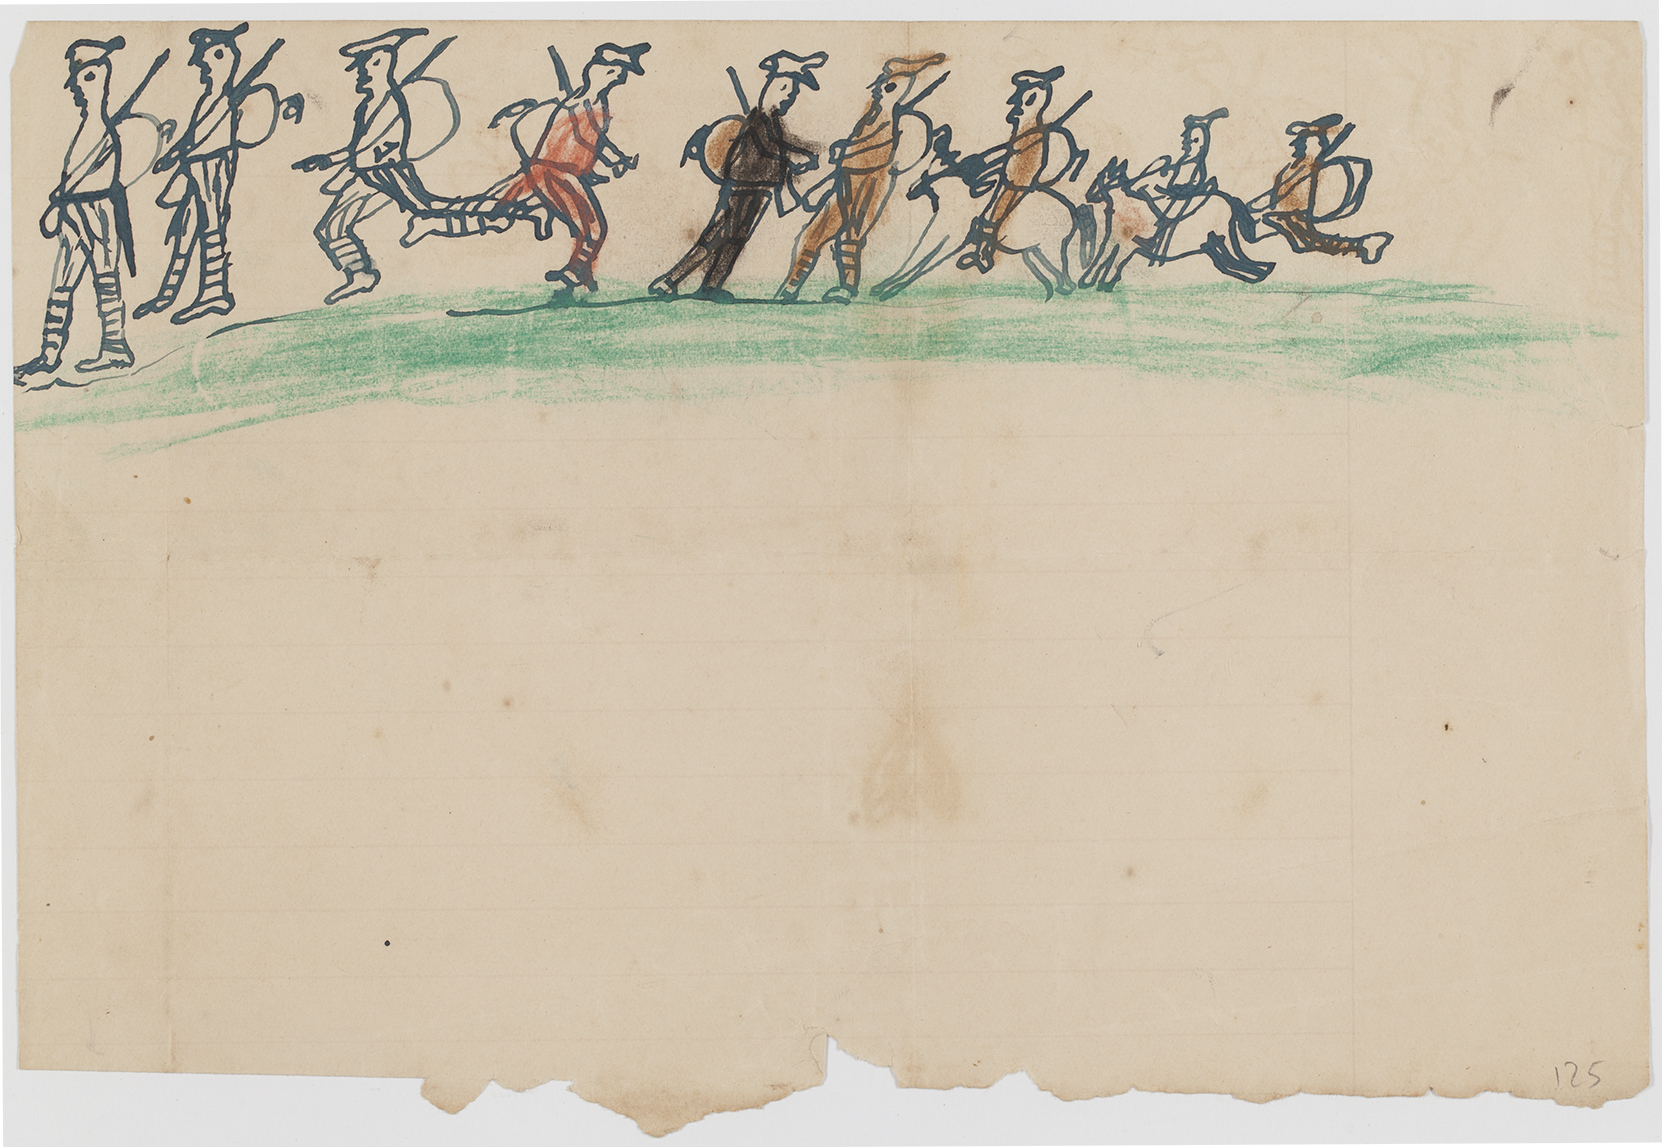 A child's pencil drawing of soldiers marching in a line across the top of yellowed page, with a torn bottom.